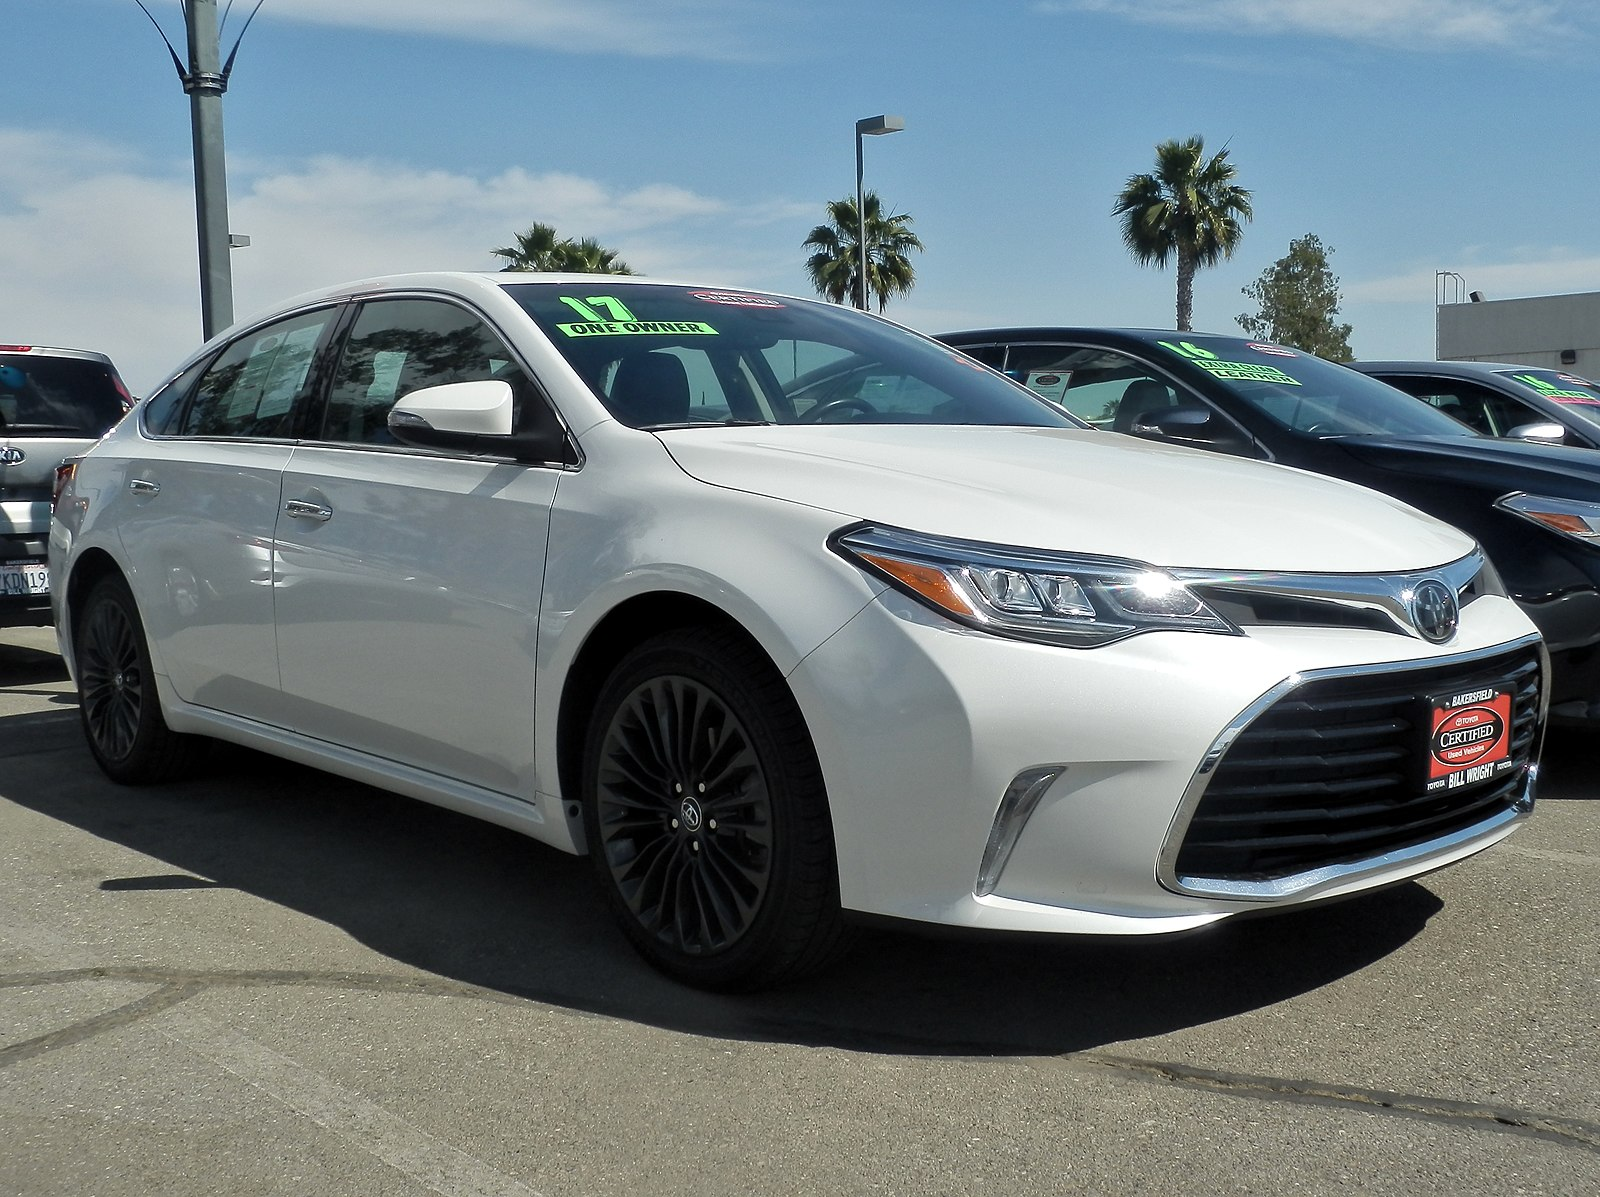 Difference Between Certified Pre-Owned and Used